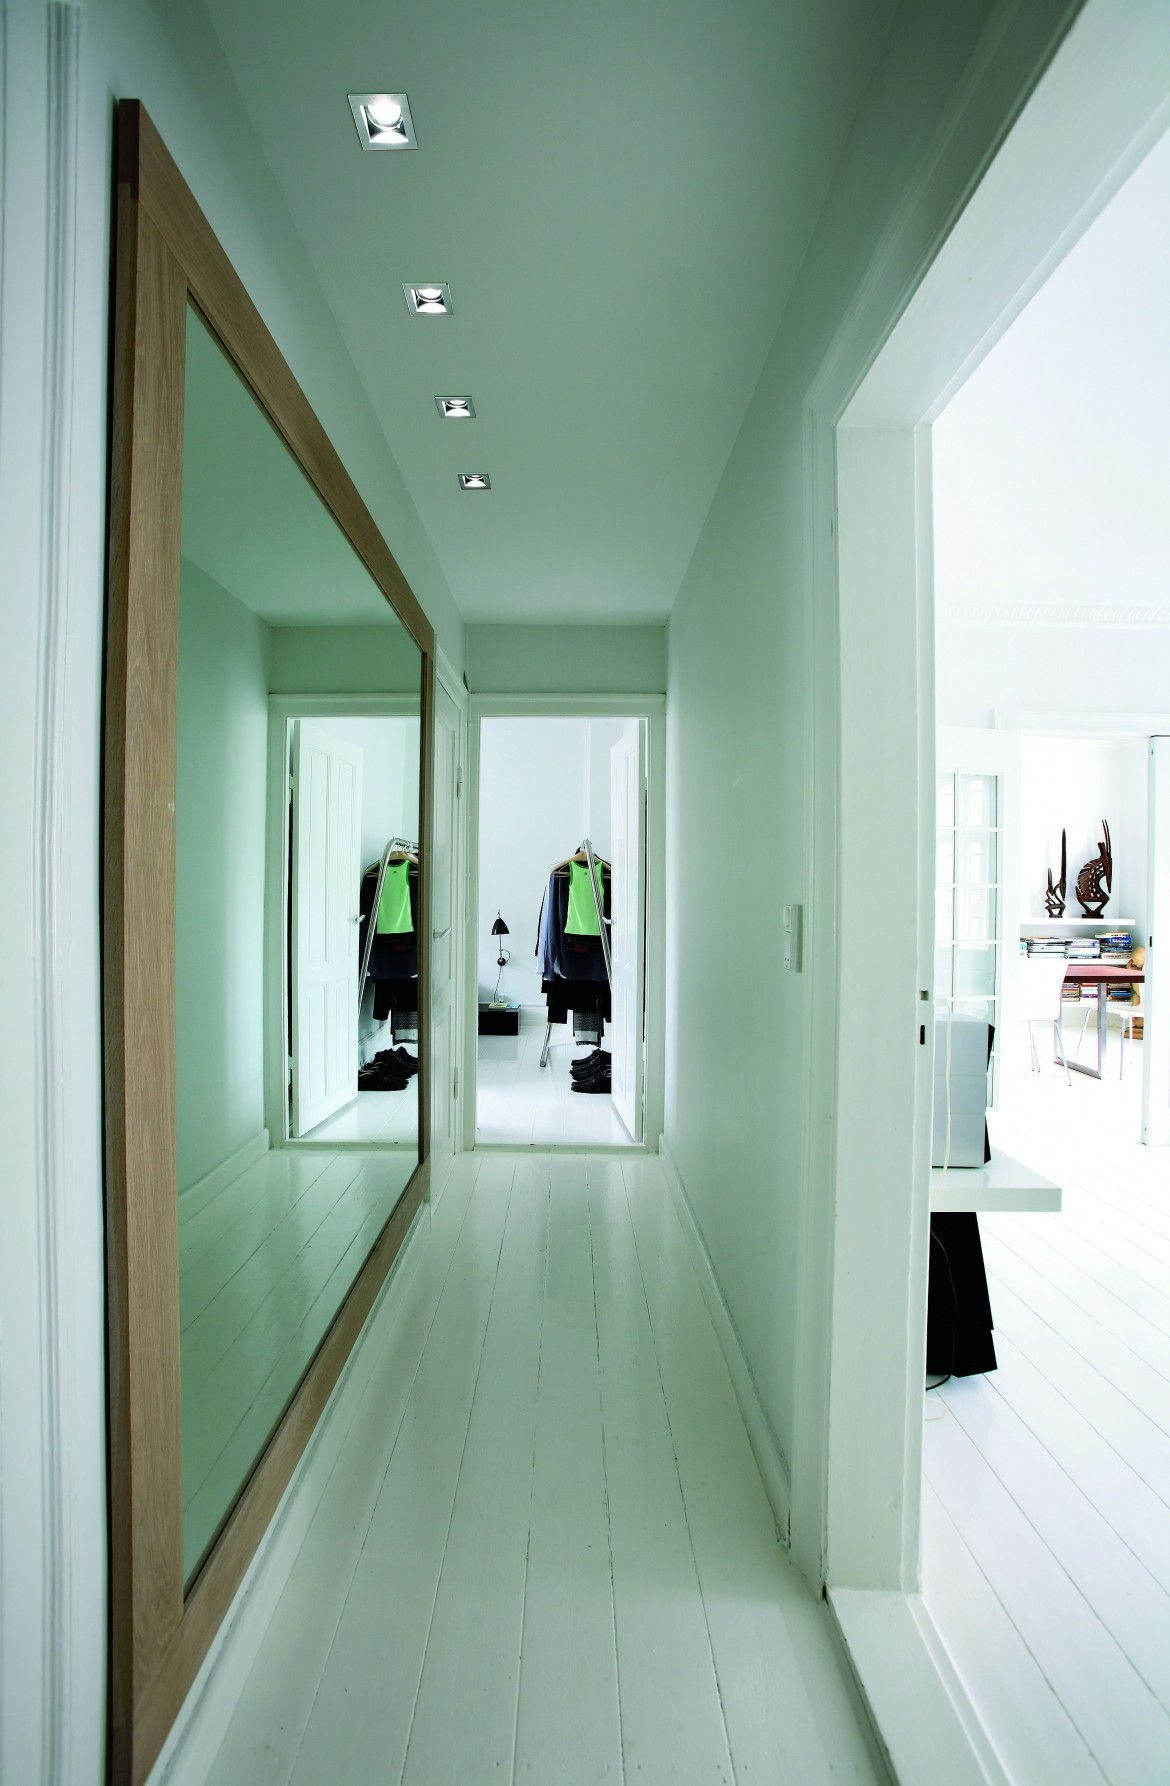 Hallway With Large Framed Wall Mirror In White Walls Hallway Pertaining To Large Hallway Mirror (Image 7 of 15)